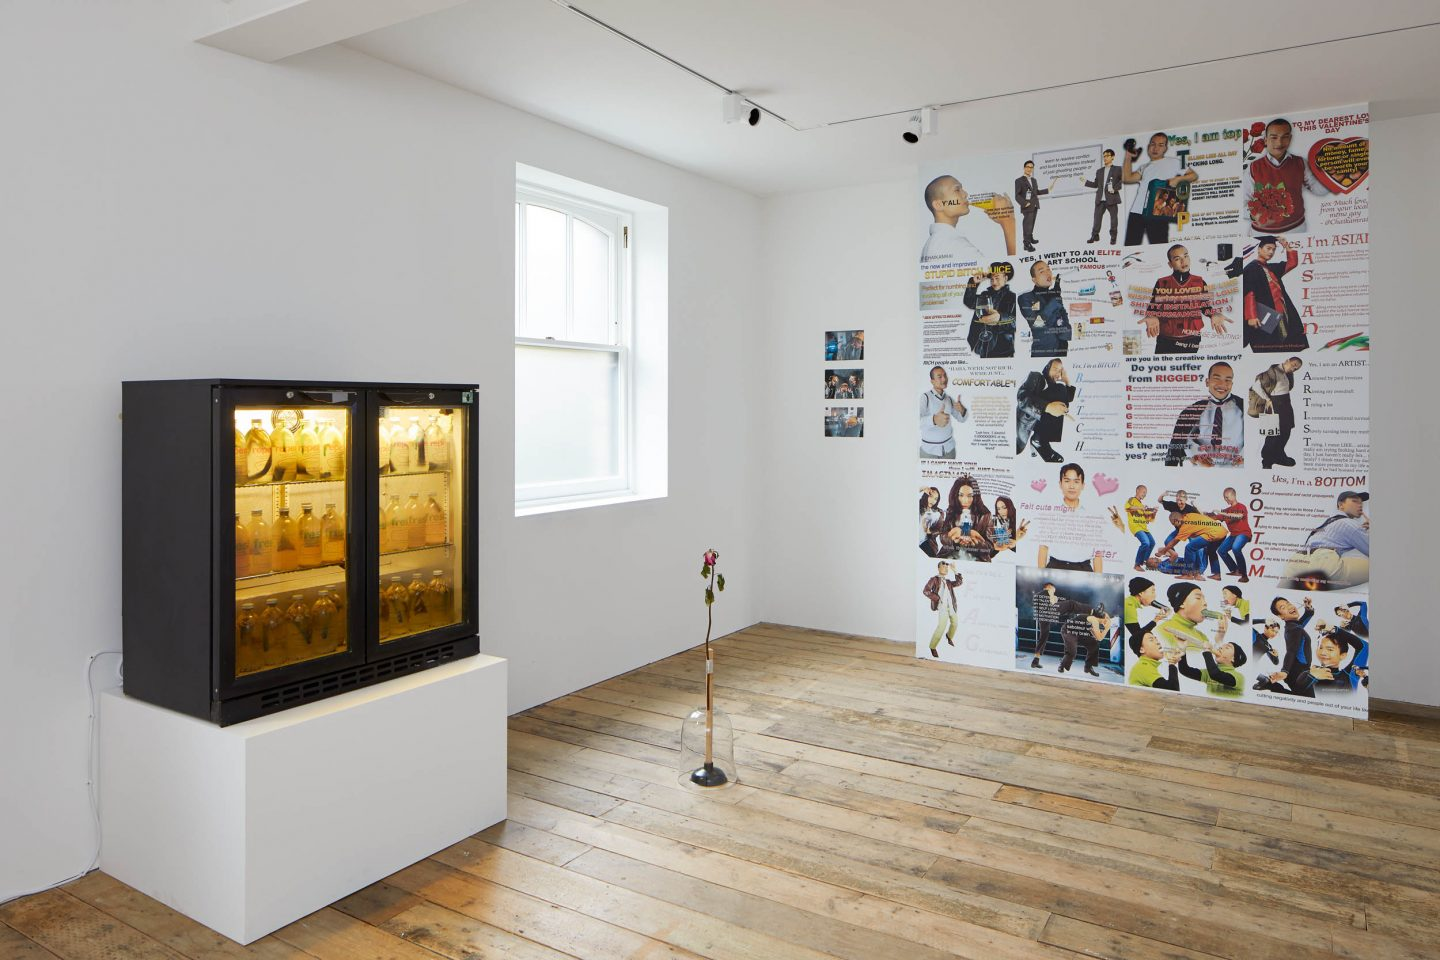 Working Progress, installation view at the South London Gallery, 2020. Photo: Andy Stagg